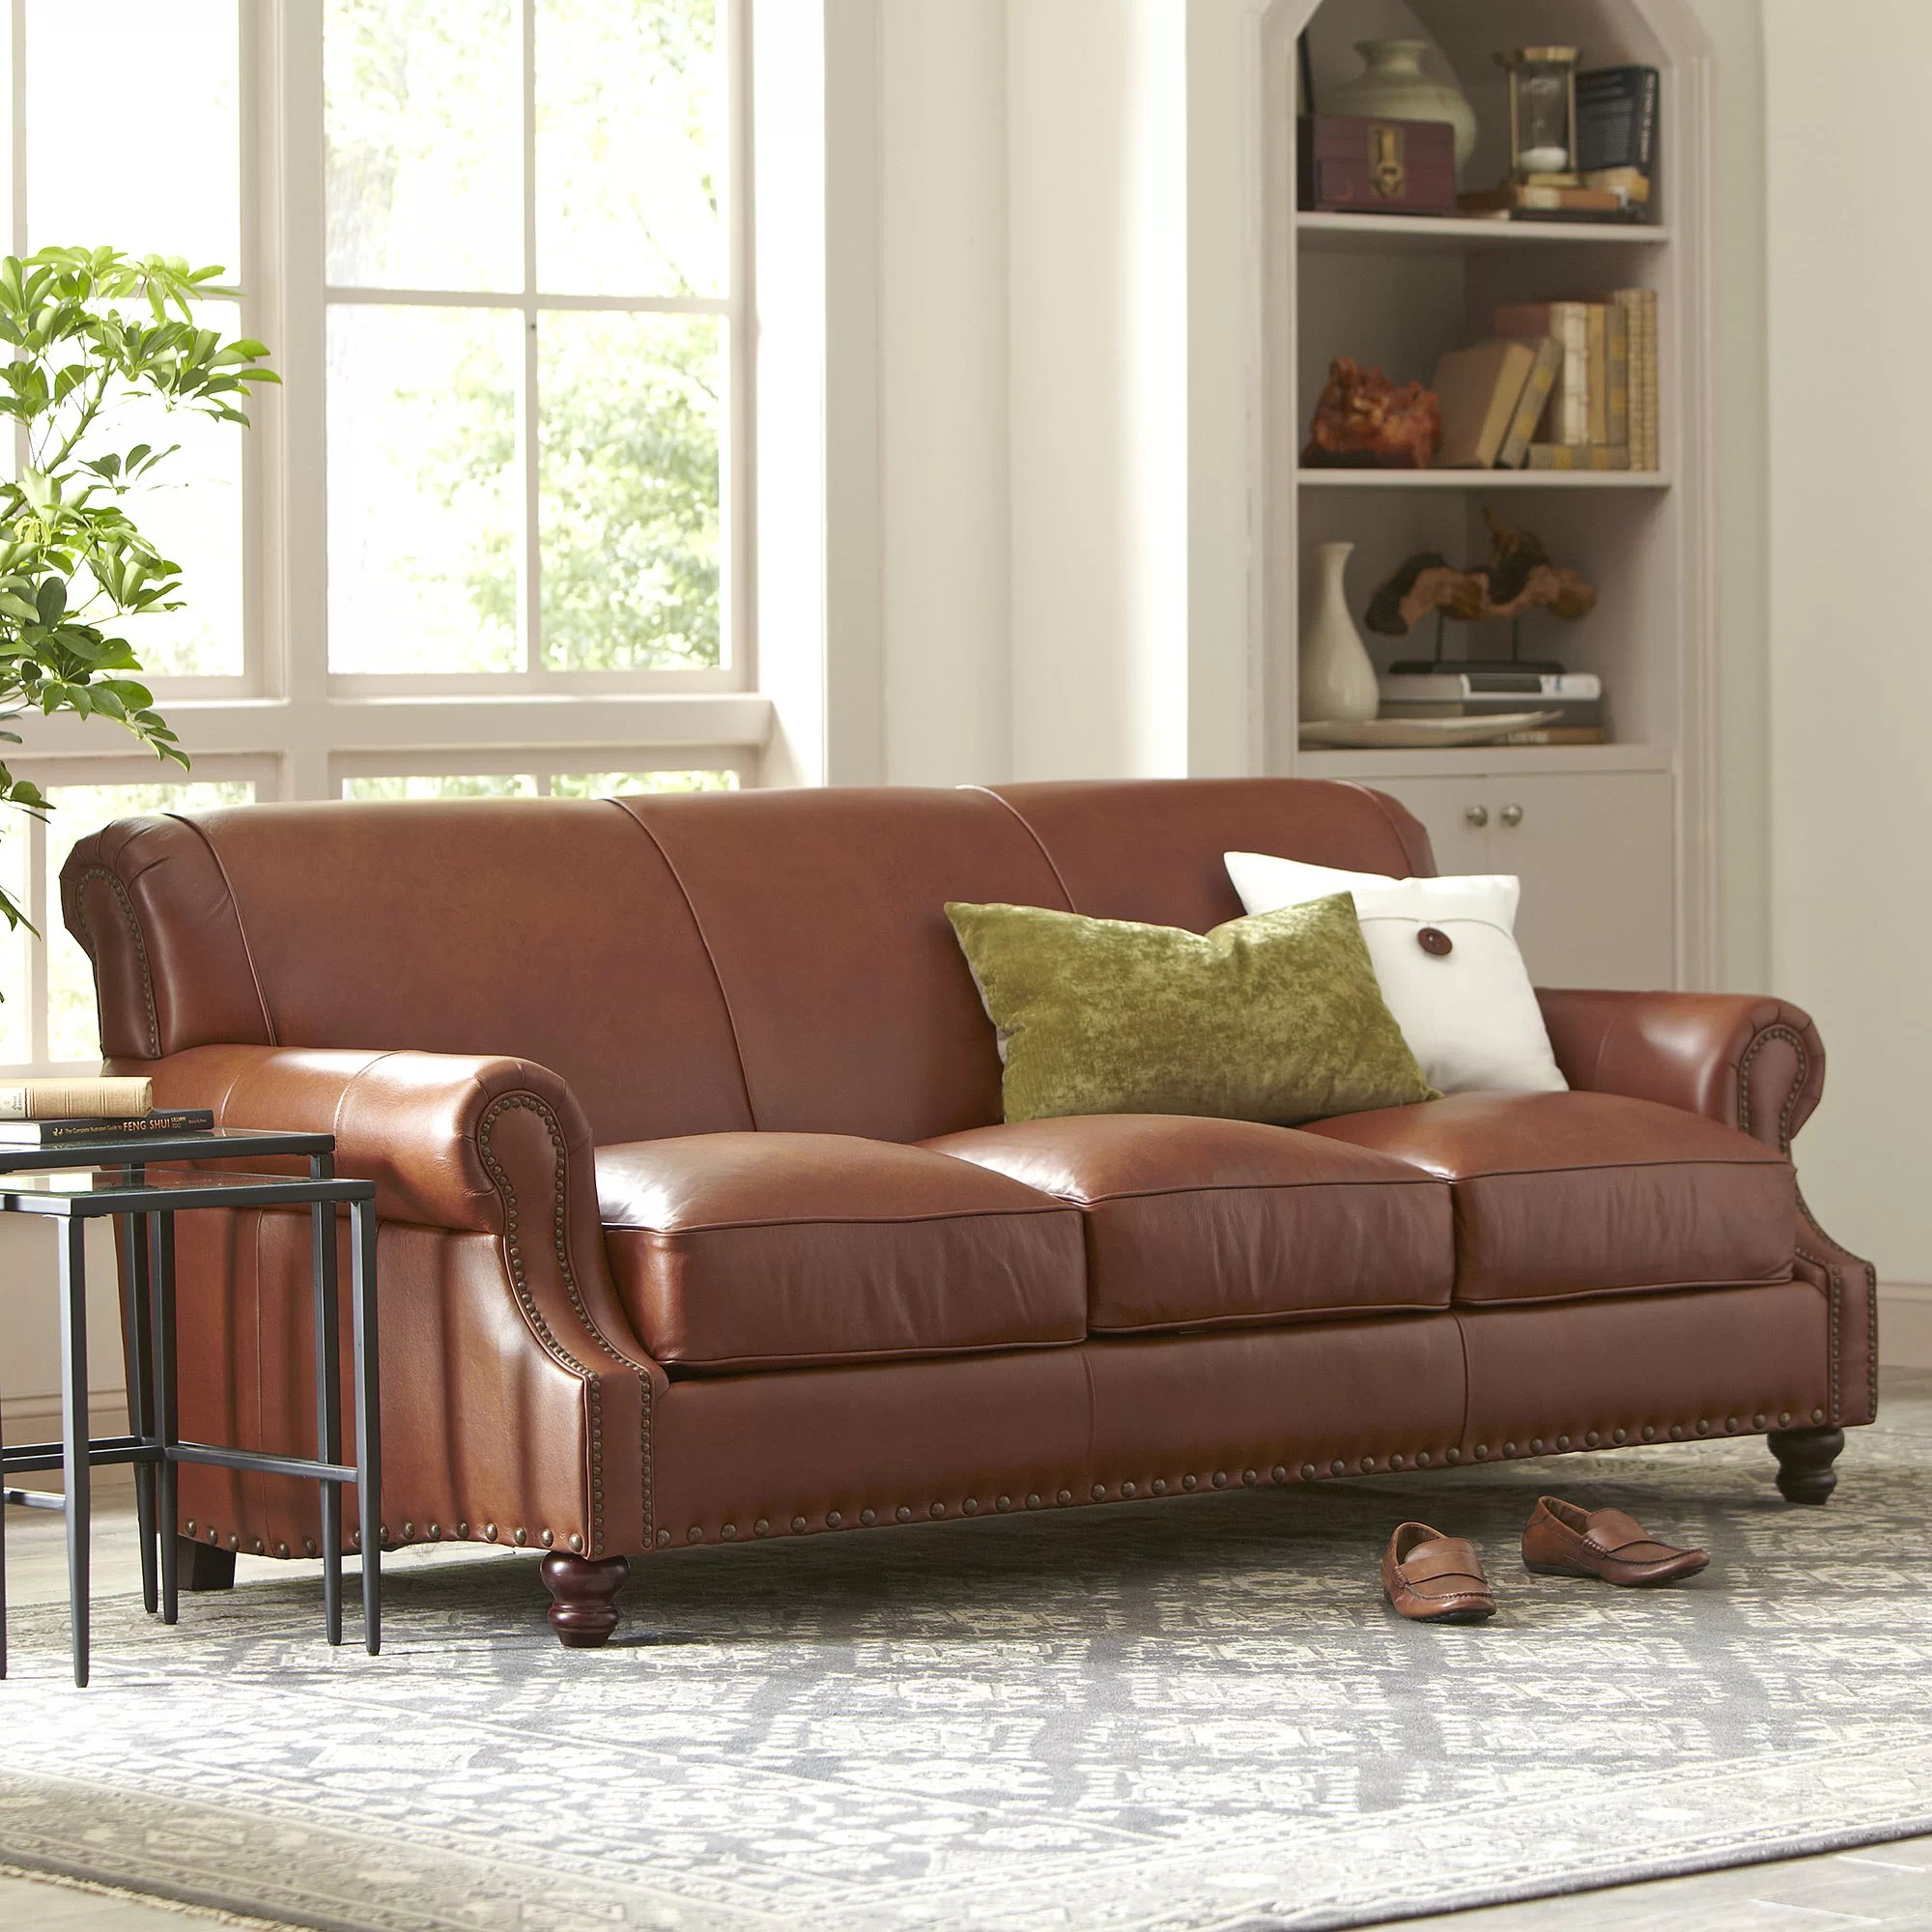 Brown Real Leather Couch Landry Leather Sofa